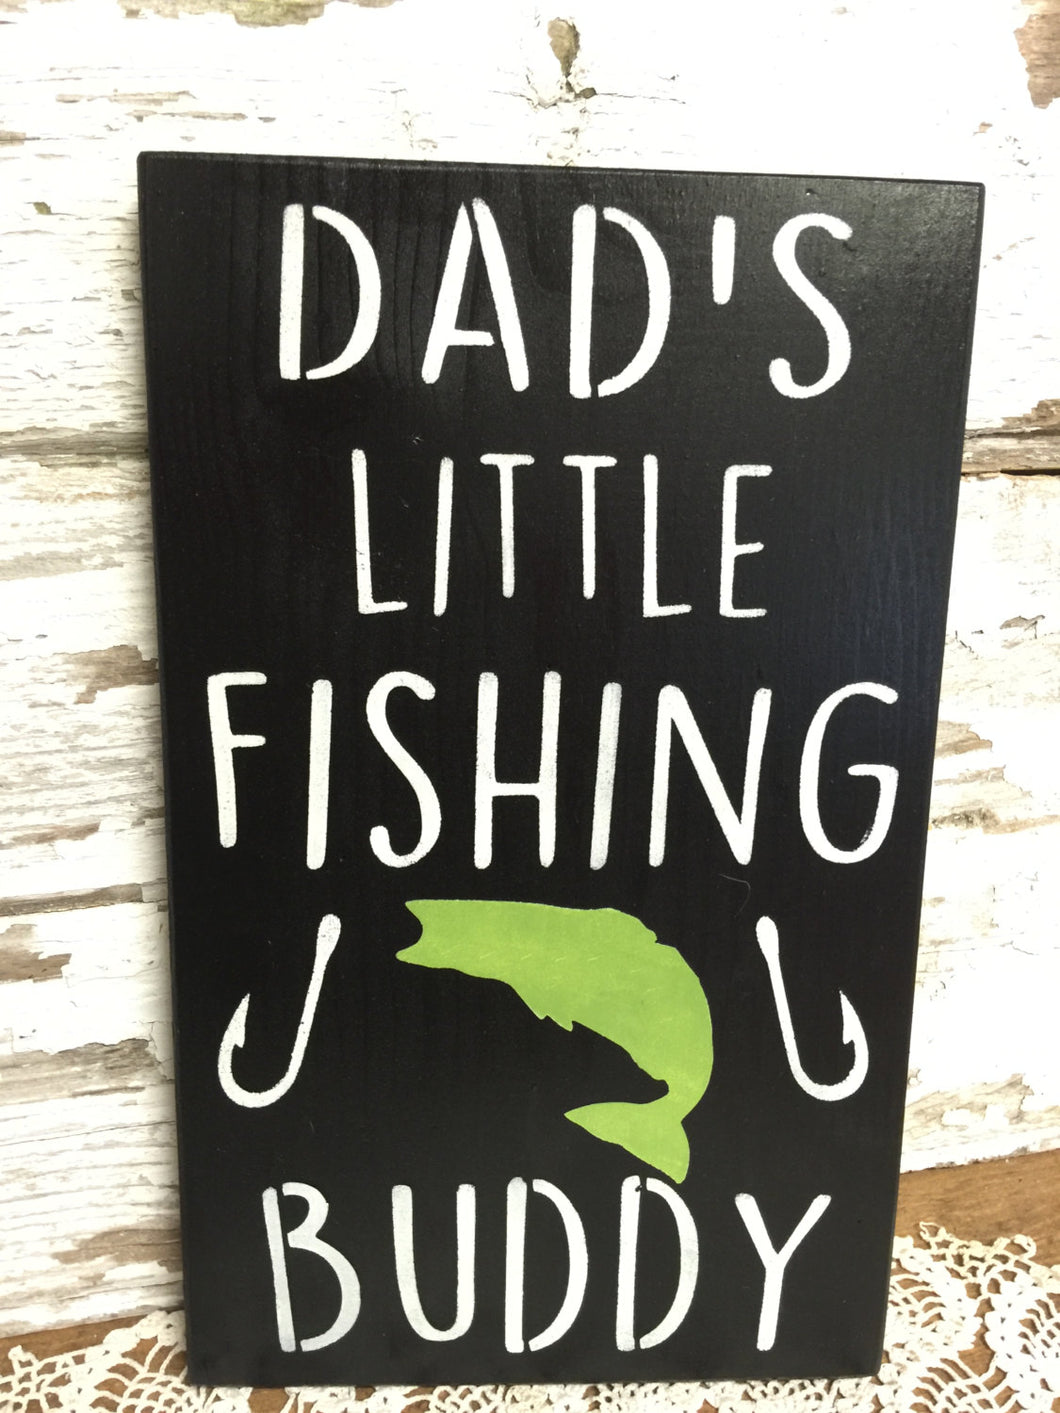 Rustic Wood Sign - Child's Bedroom Decor - Dad's Fishing Buddy - Baby Shower Gift - Fishing Sign - Rustic Decor - Fishing Wall Hanging